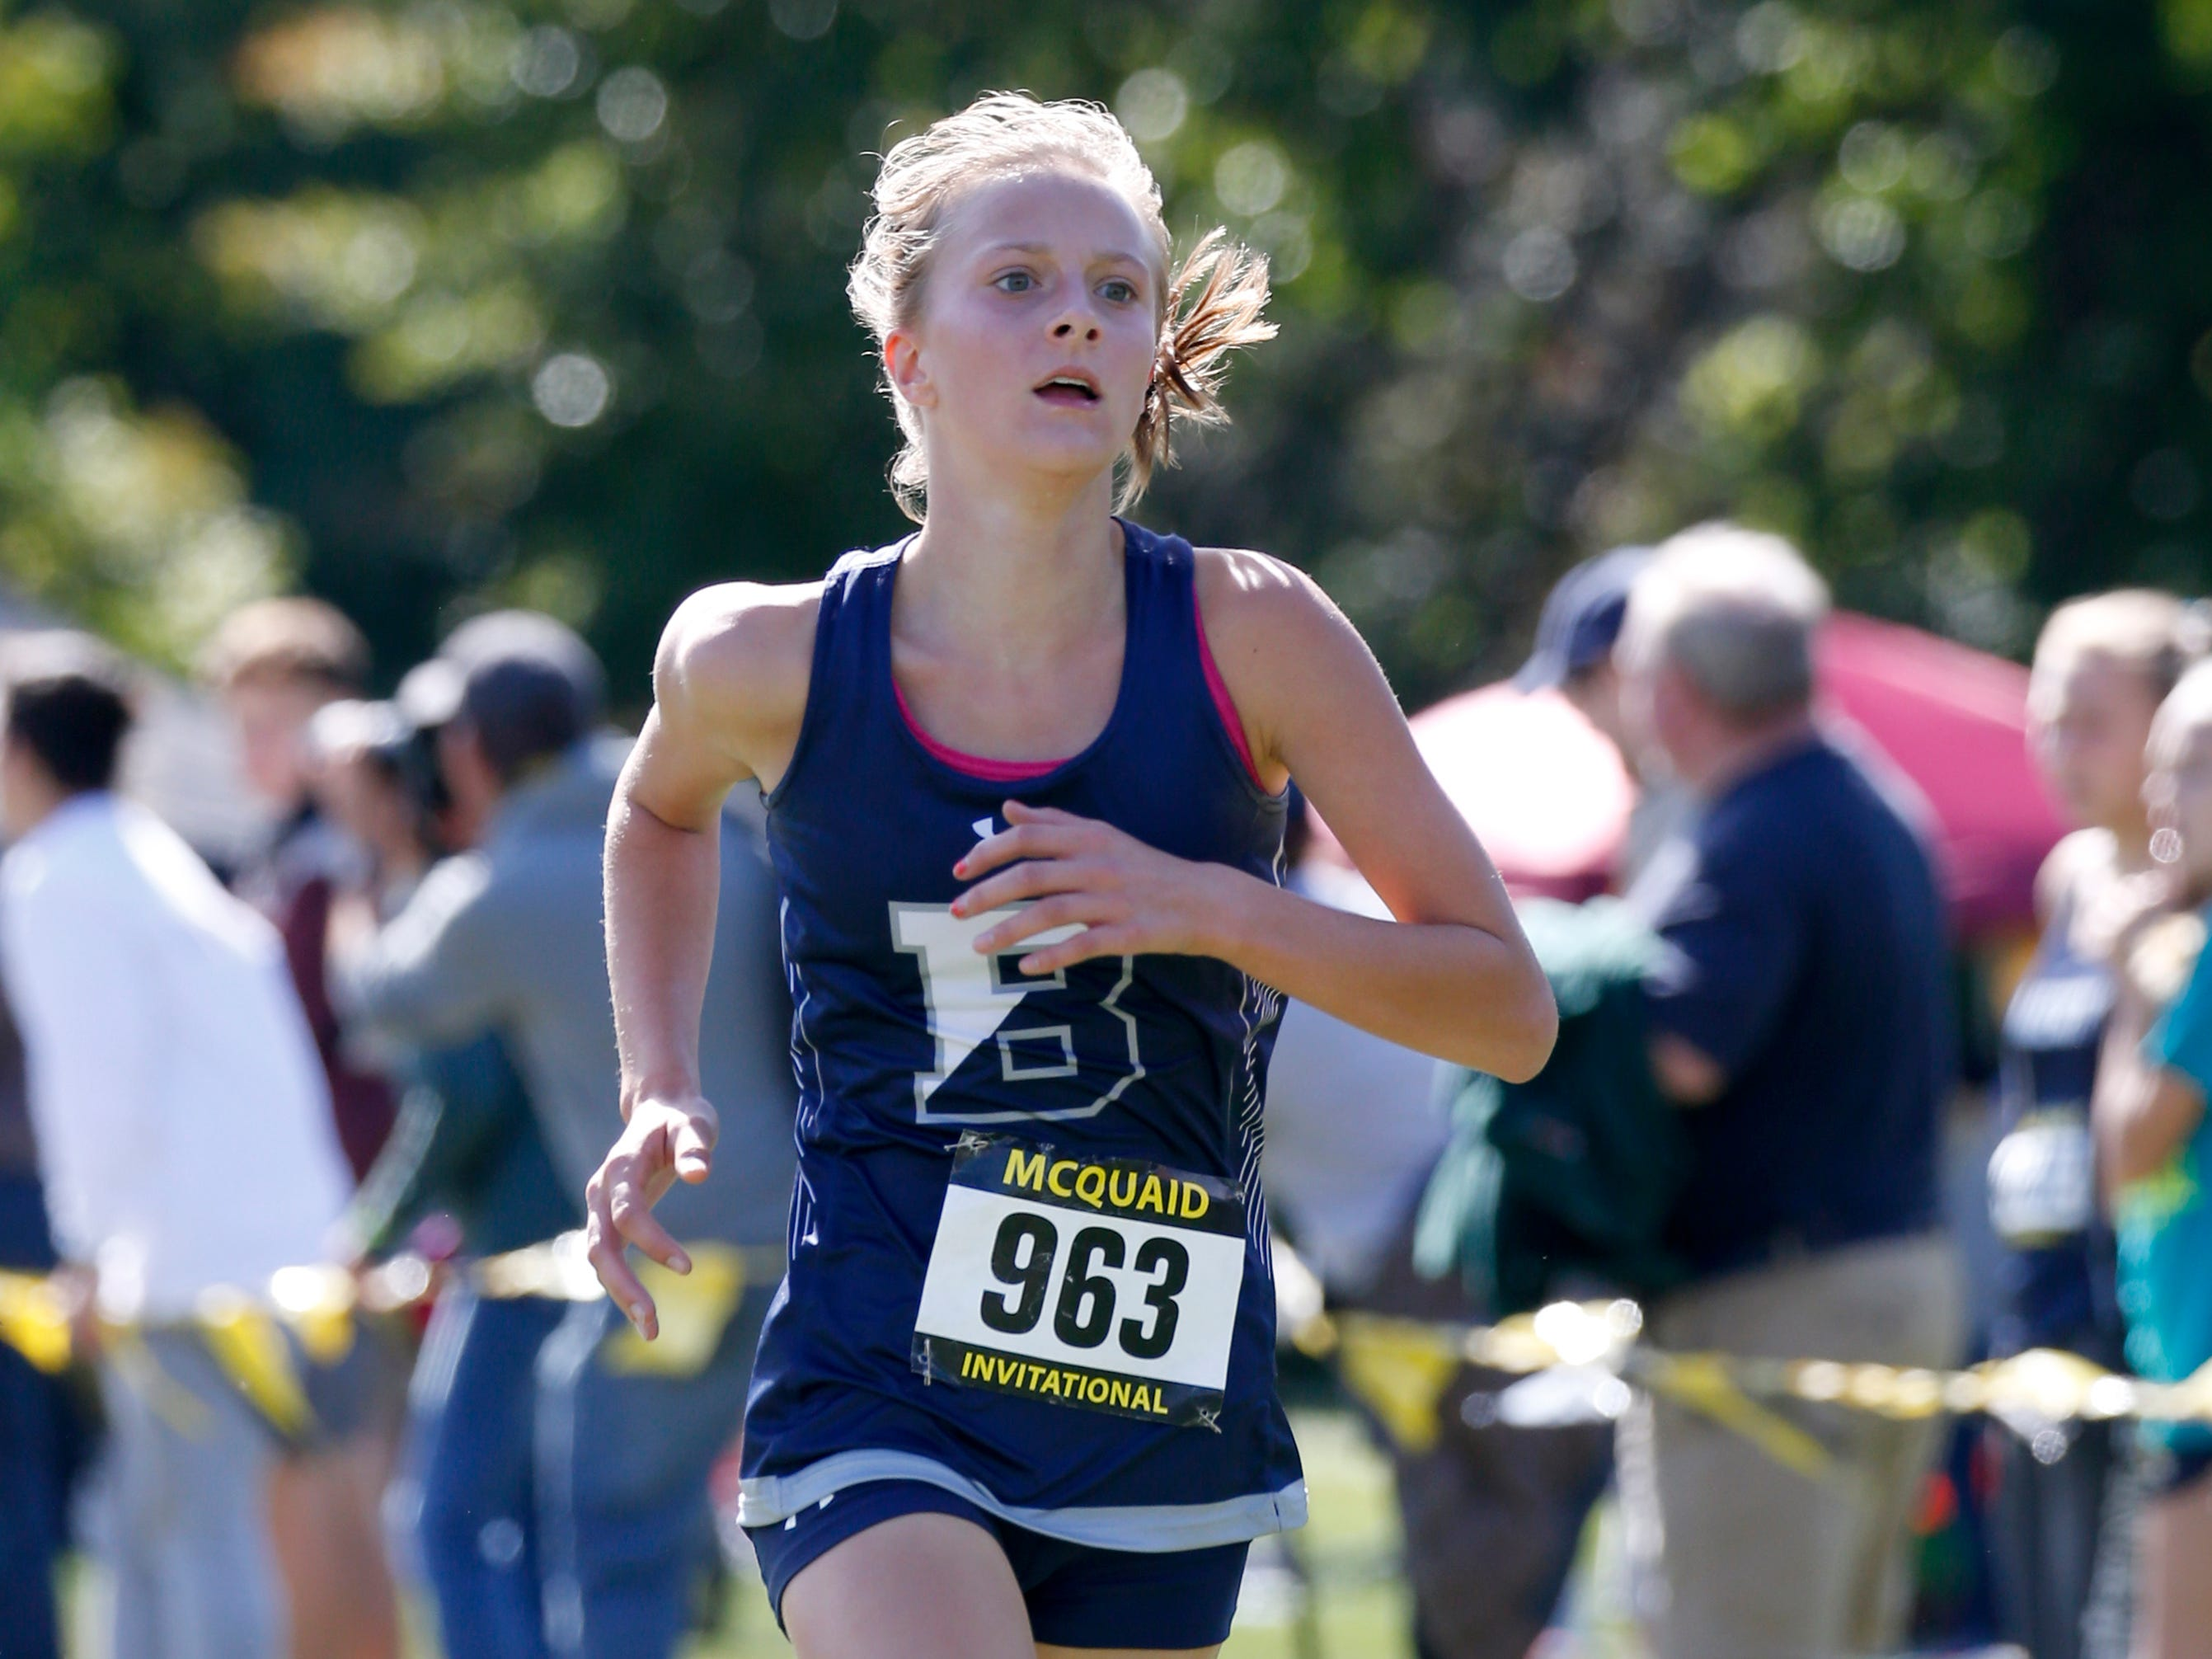 Girls Varsity AA (Seeded Medium schools) Tony Canali Memorial race: 12th place Eilee Ossont of Brighton 19:04.5.